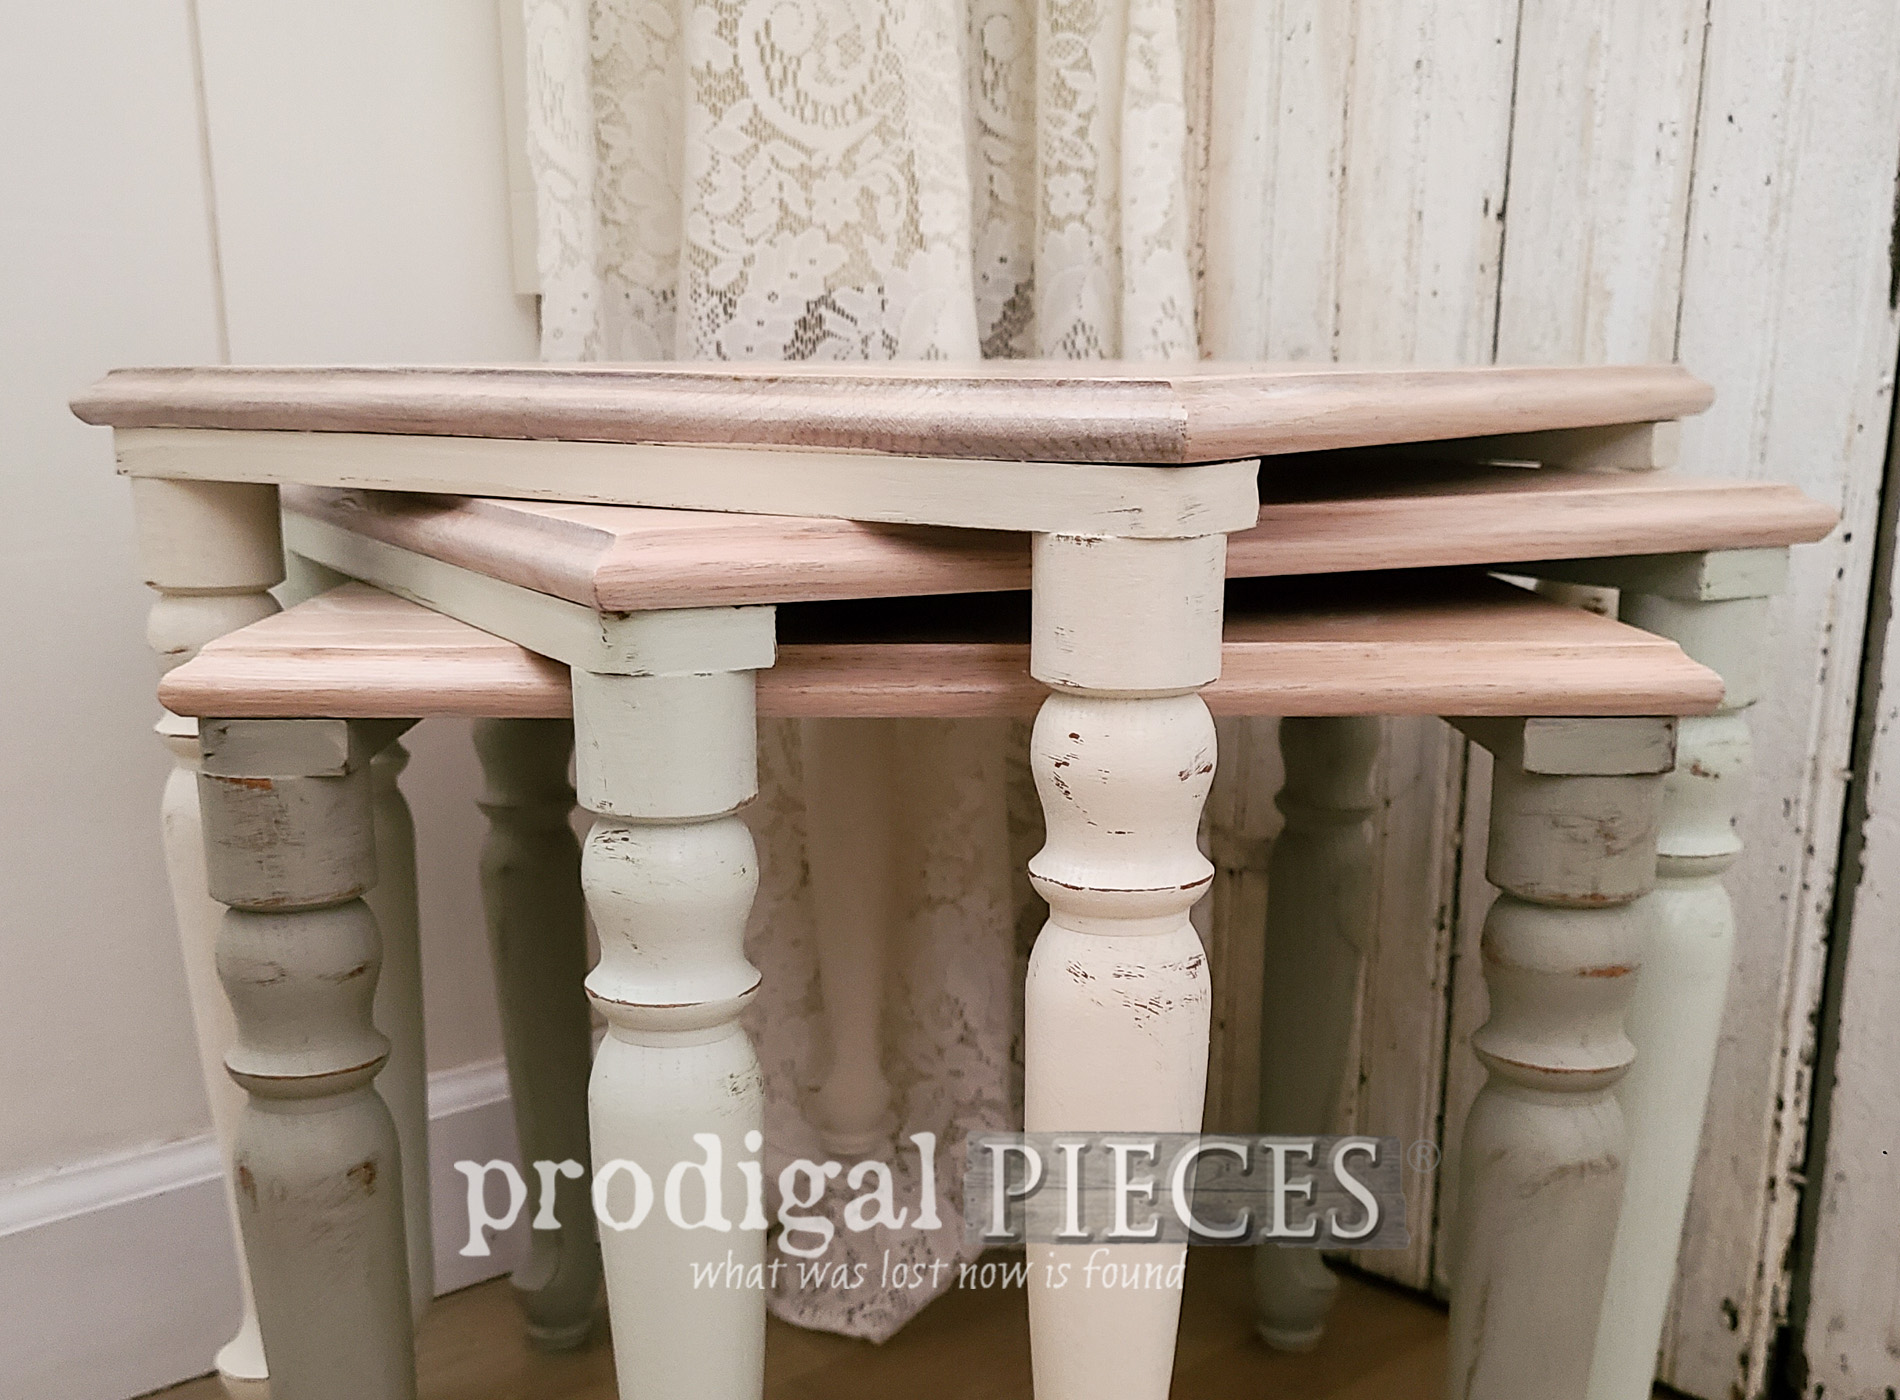 Featured Vintage Stacking Tables with Floral Design by Larissa of Prodigal Pieces | prodigalpieces.com #prodigalpieces #furniture #diy #home #homedecor